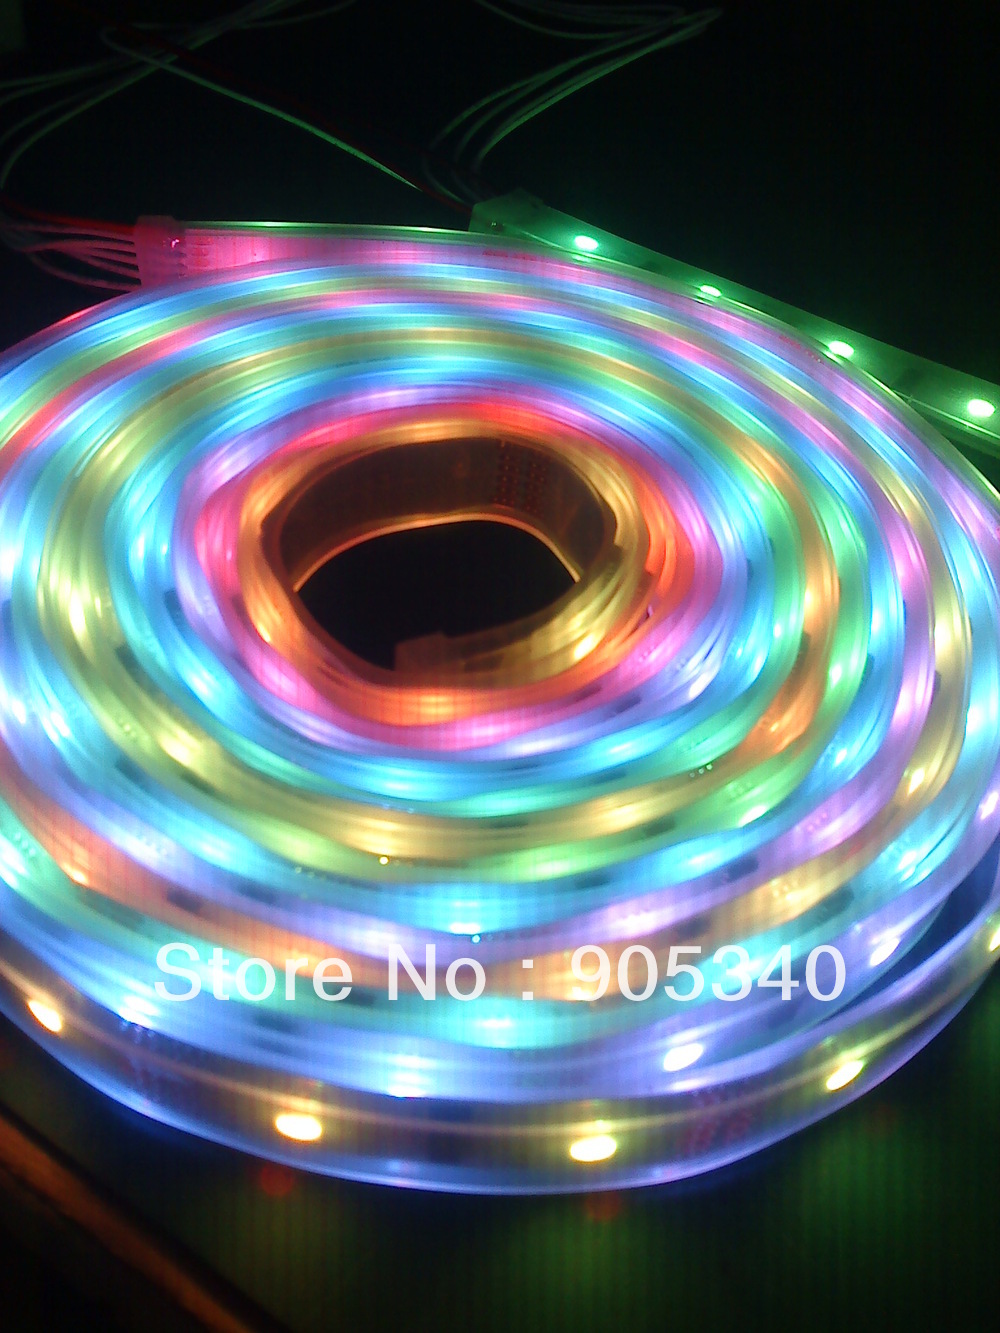 Magic led strip 5m 6803 IC 5050 digital RGB Strip,150LED IP67 silicon tube waterproof dream color 12V Led Strip,30LED/m,CE.ROHS(China (Mainland))